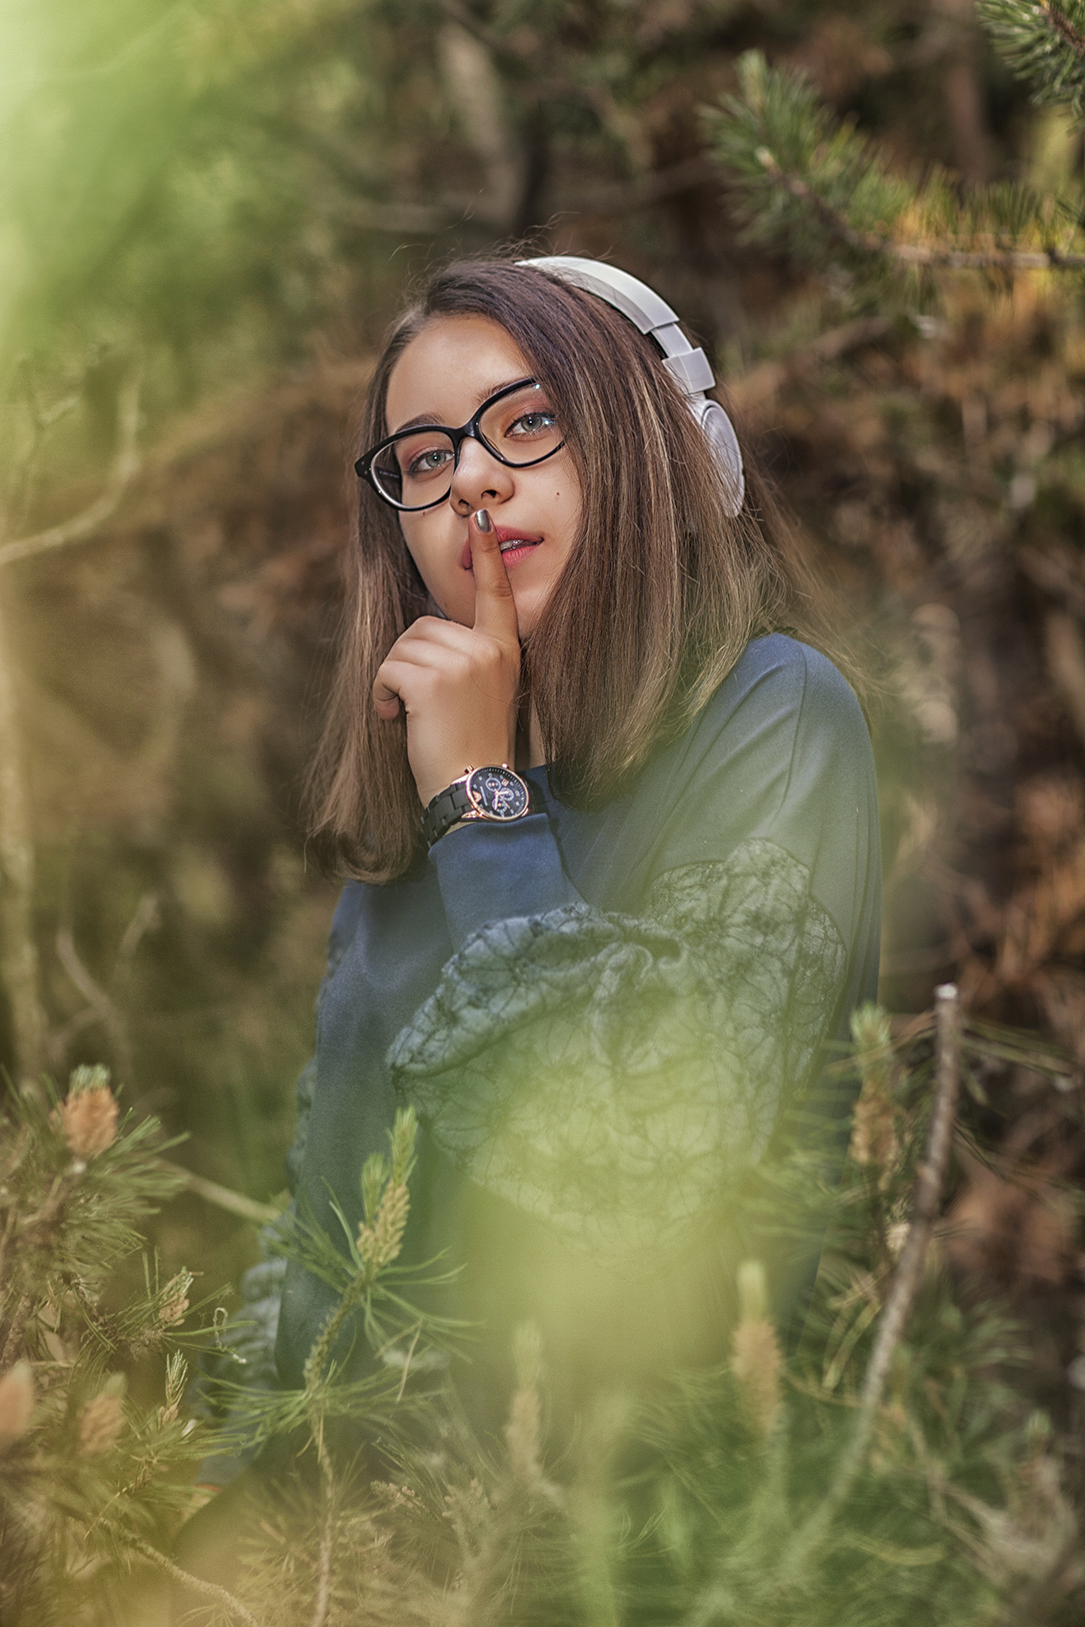 girl portrait photography